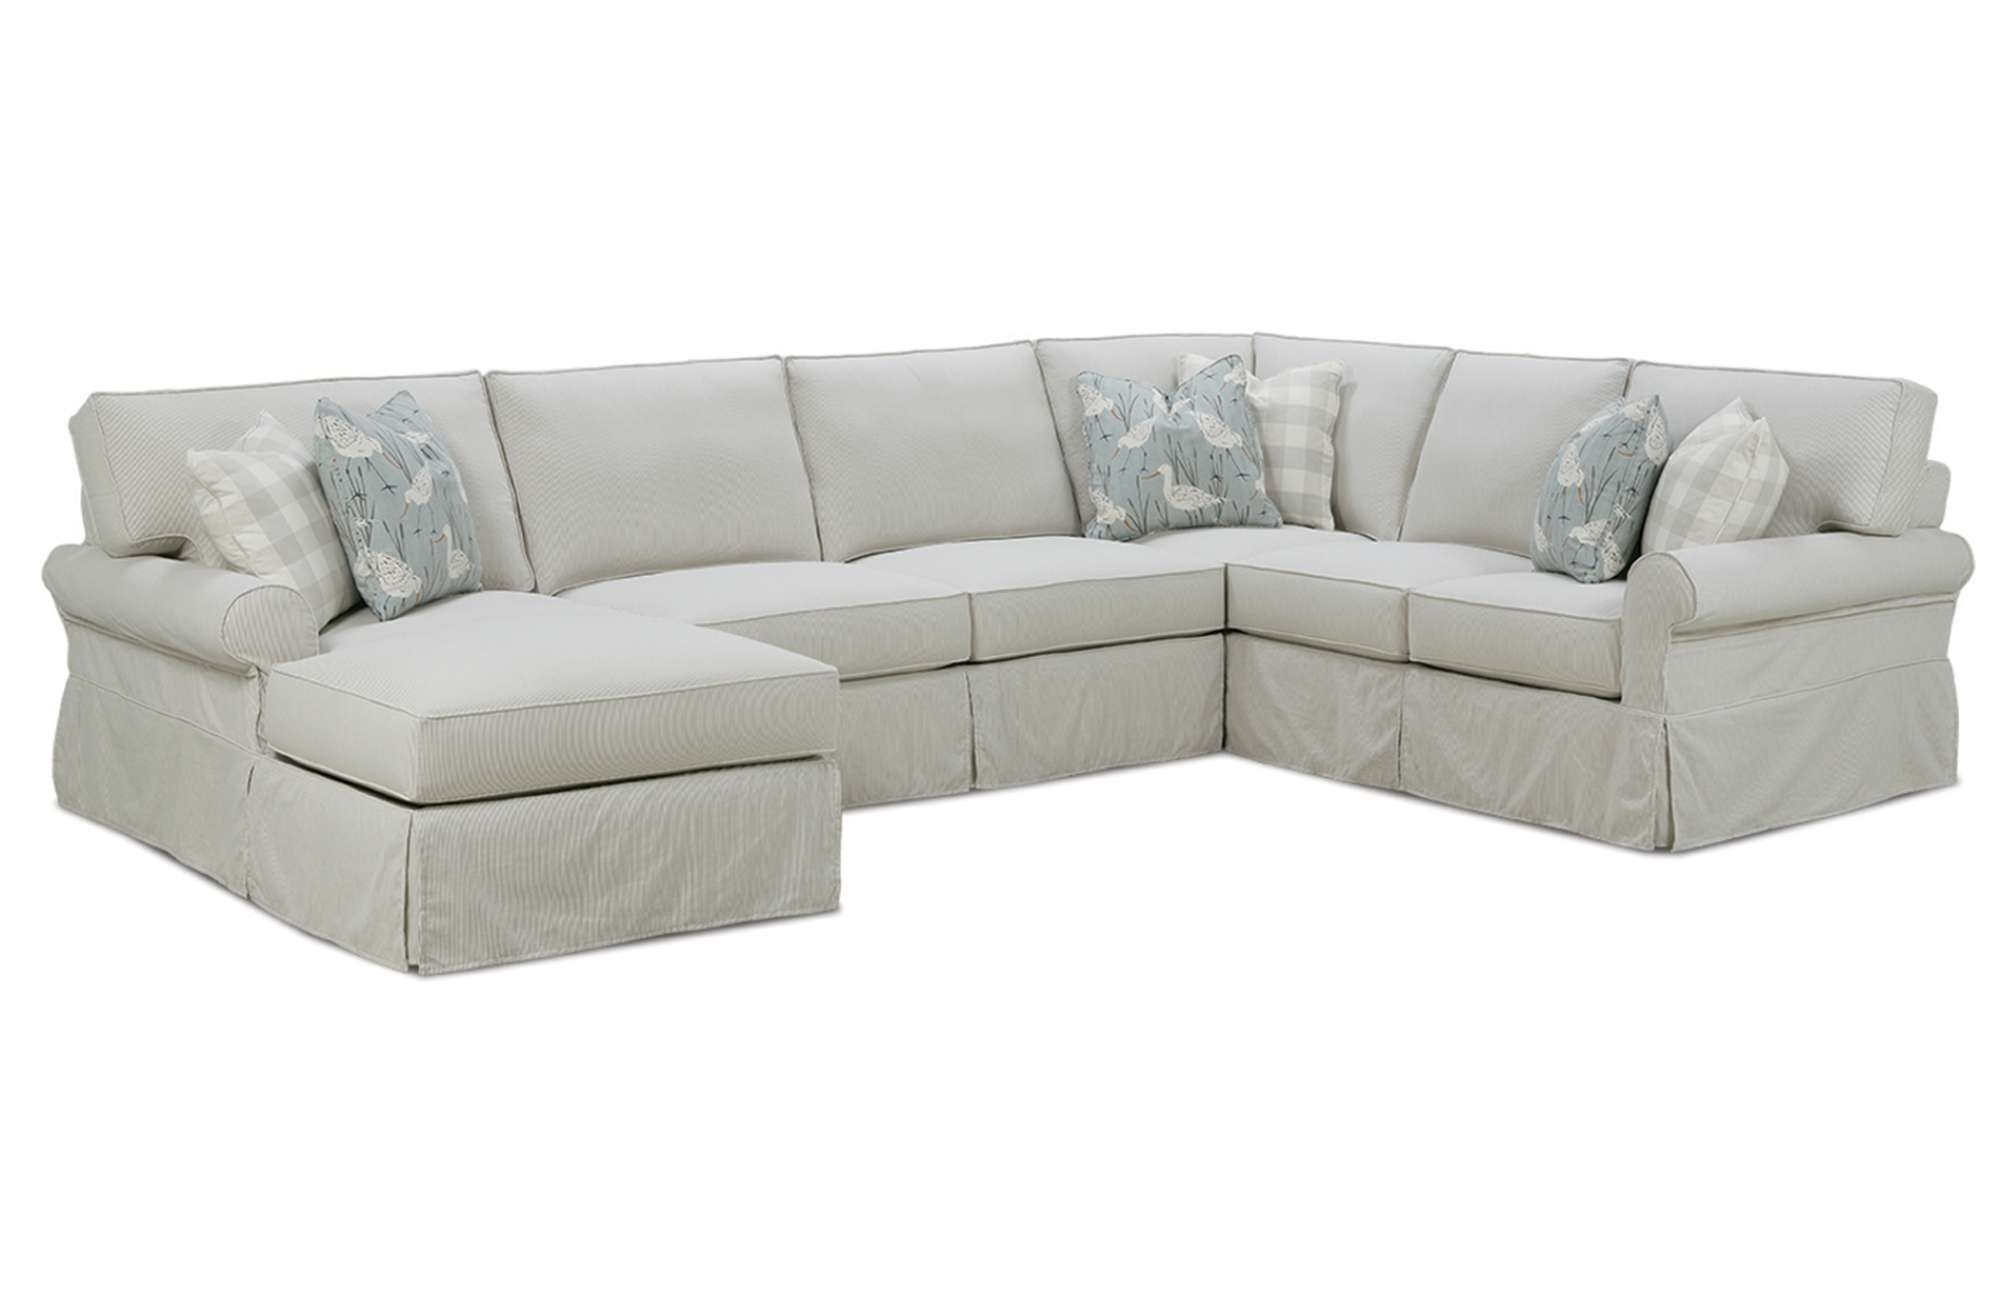 Well Liked Easton Slipcover Sectionalrowe Furniture Inside Slipcover Sectional Sofas With Chaise (View 15 of 15)